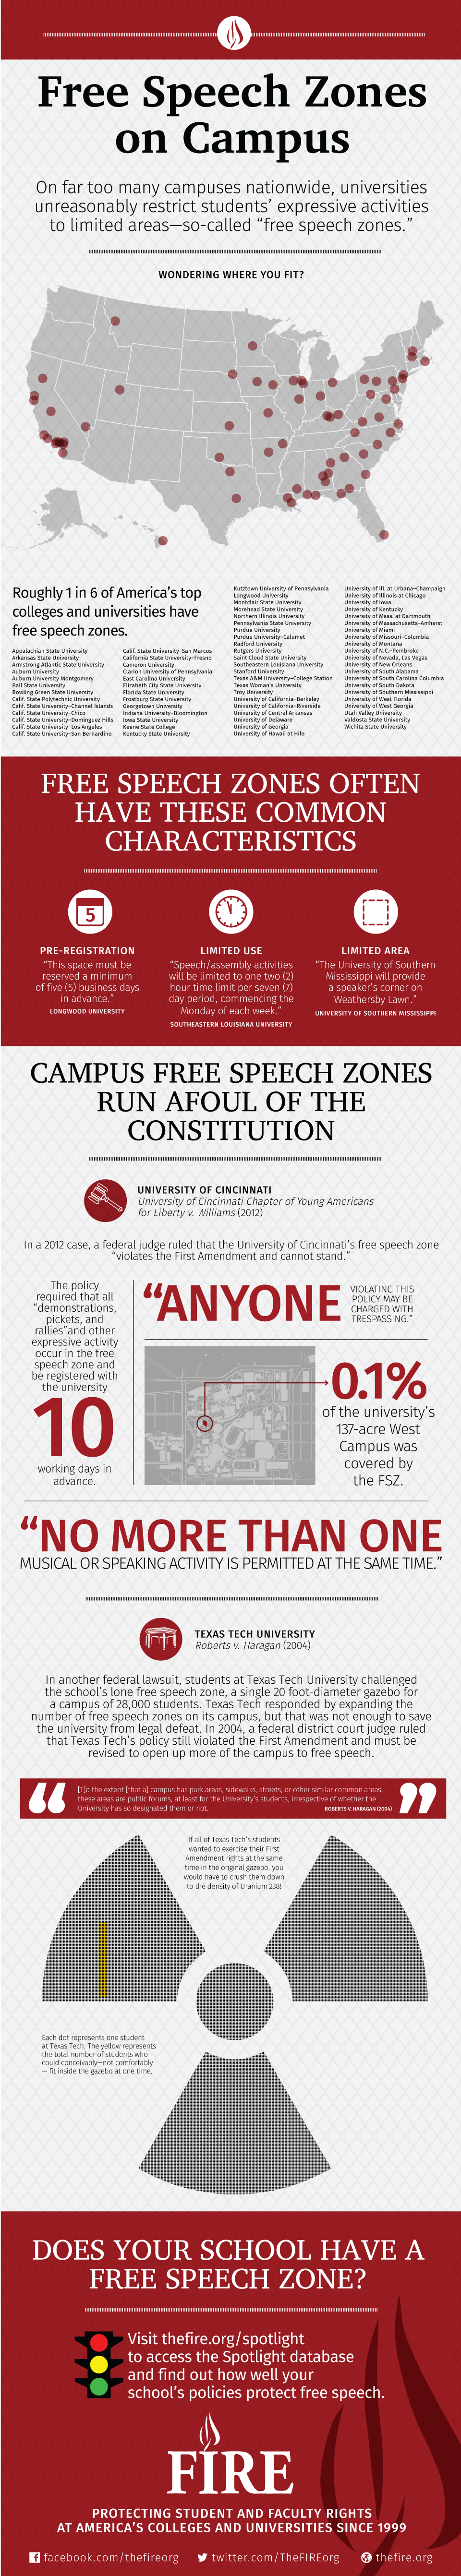 Free-speech-zone-infographic-full